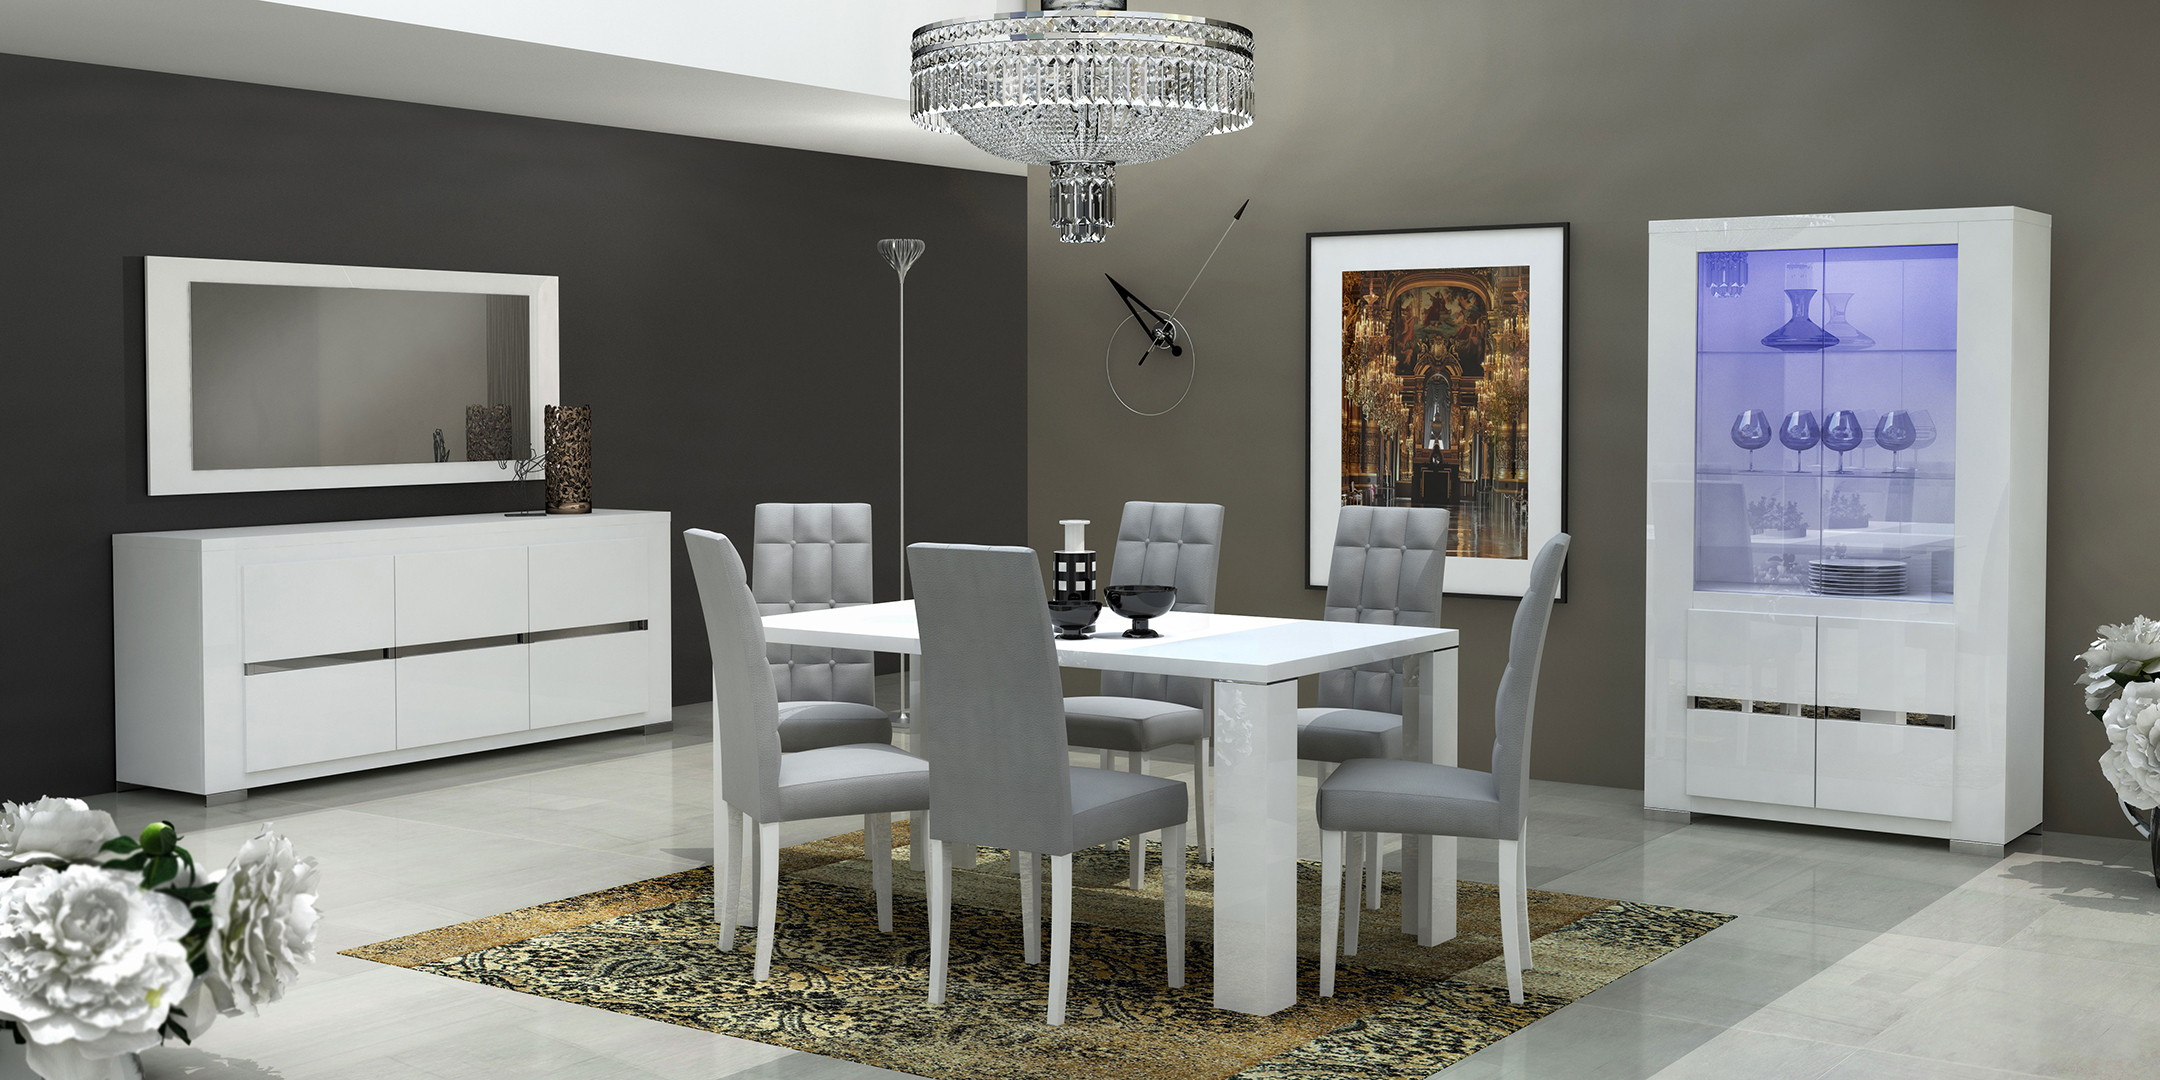 All modern dining room sets design ideas and inspiration for All modern decor